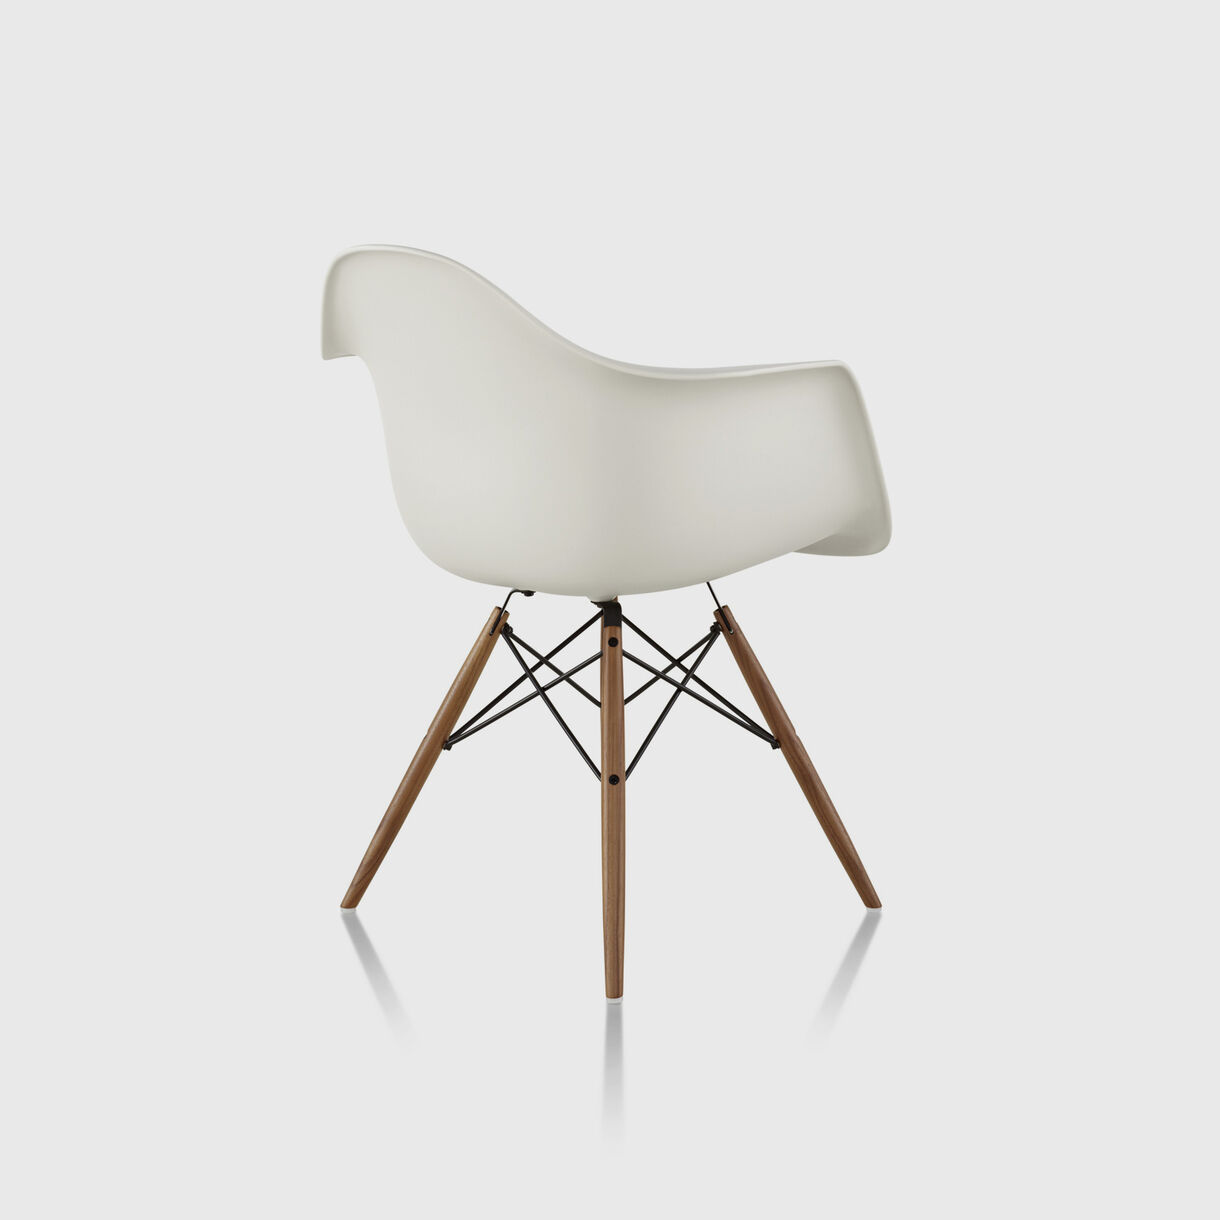 Eames Moulded Plastic Armchair Wood, White, Natural Maple